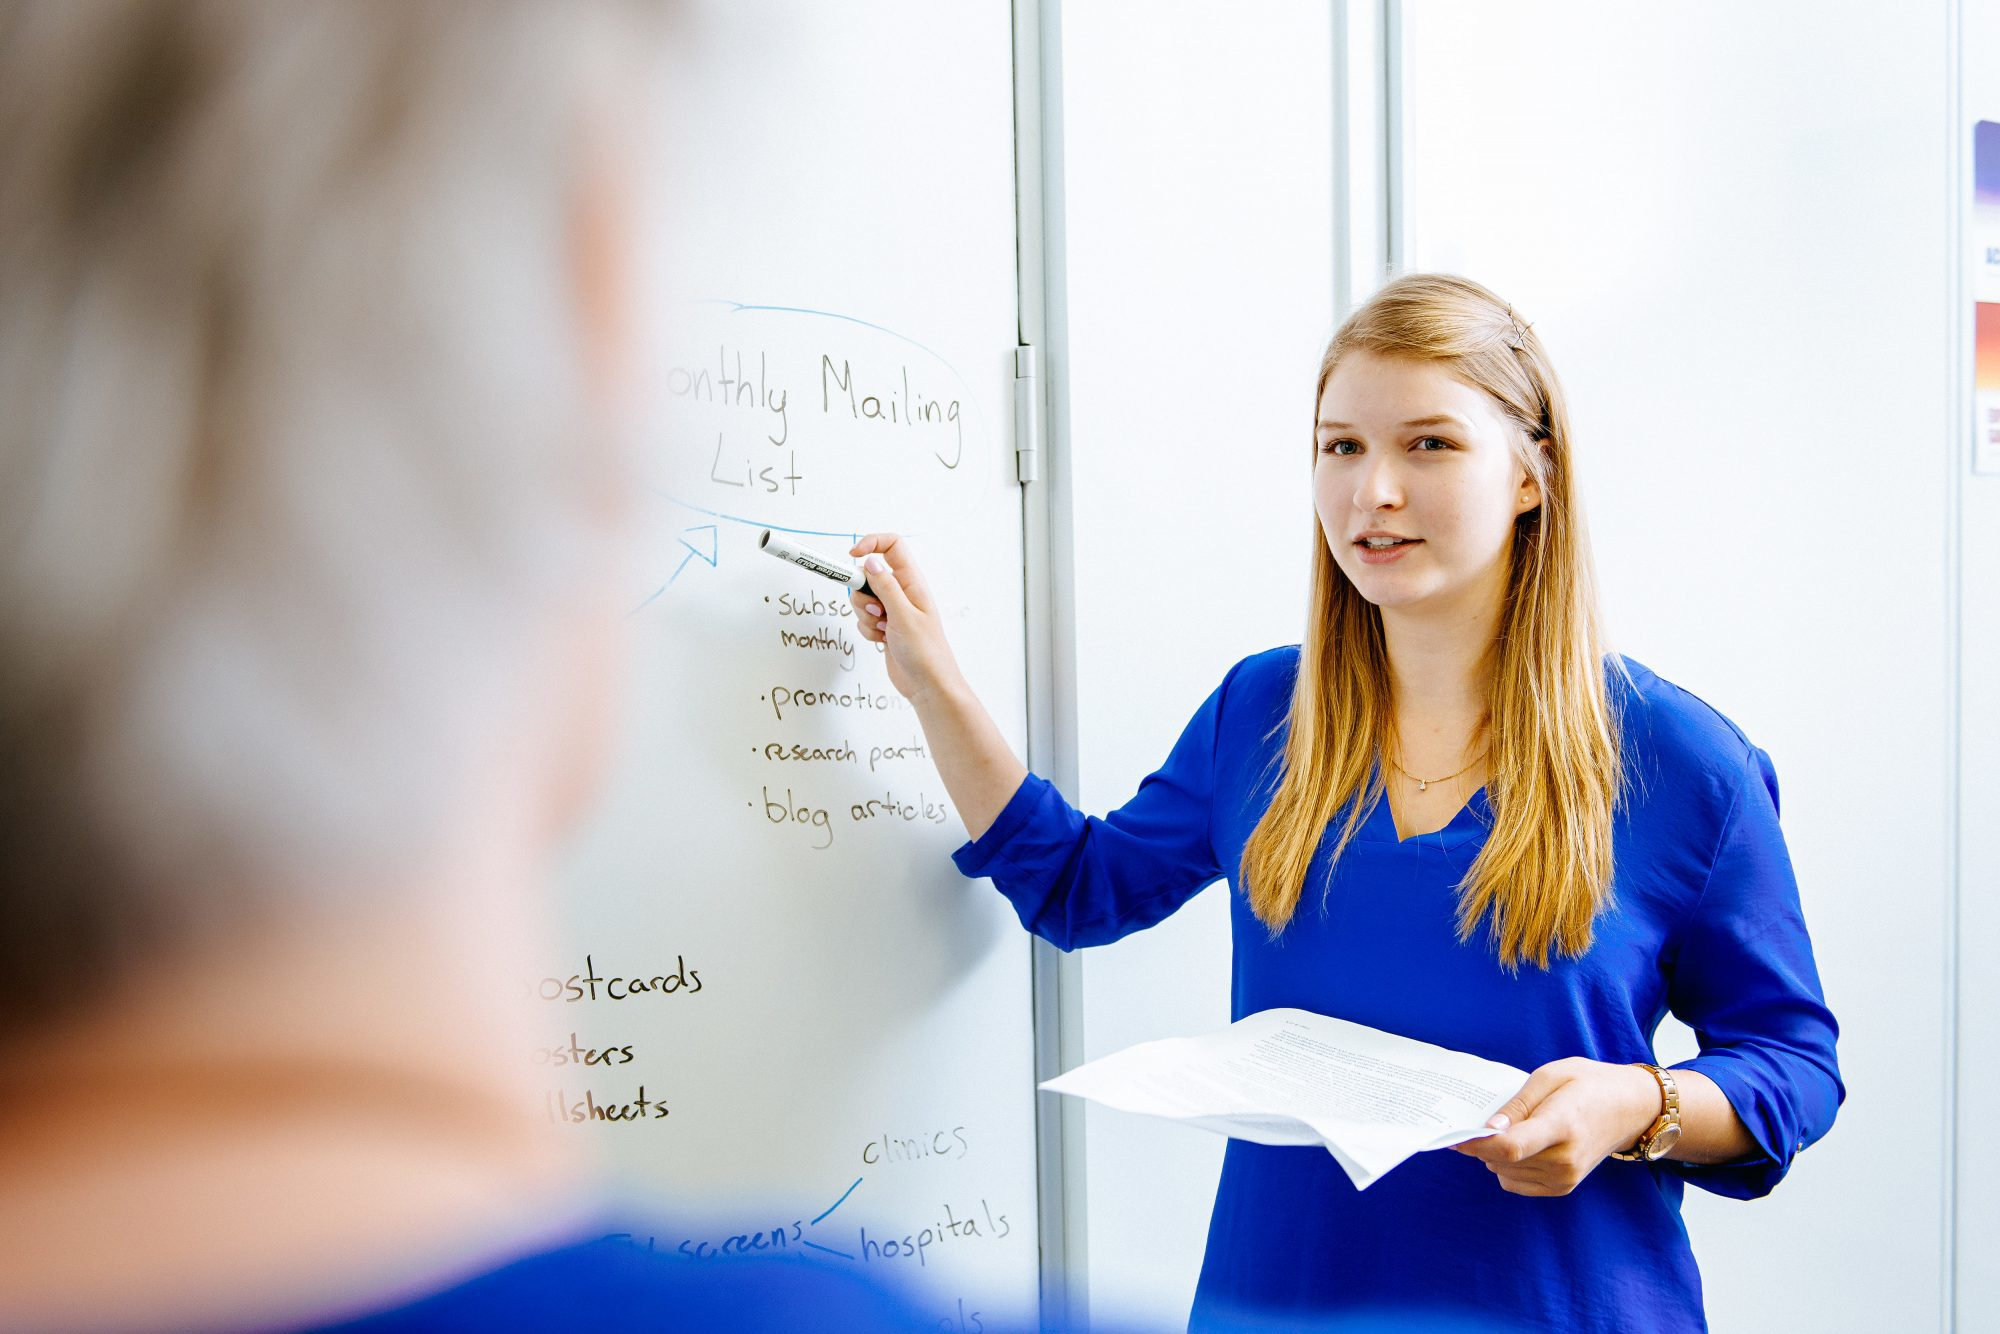 A girl presenting something from a whiteboard